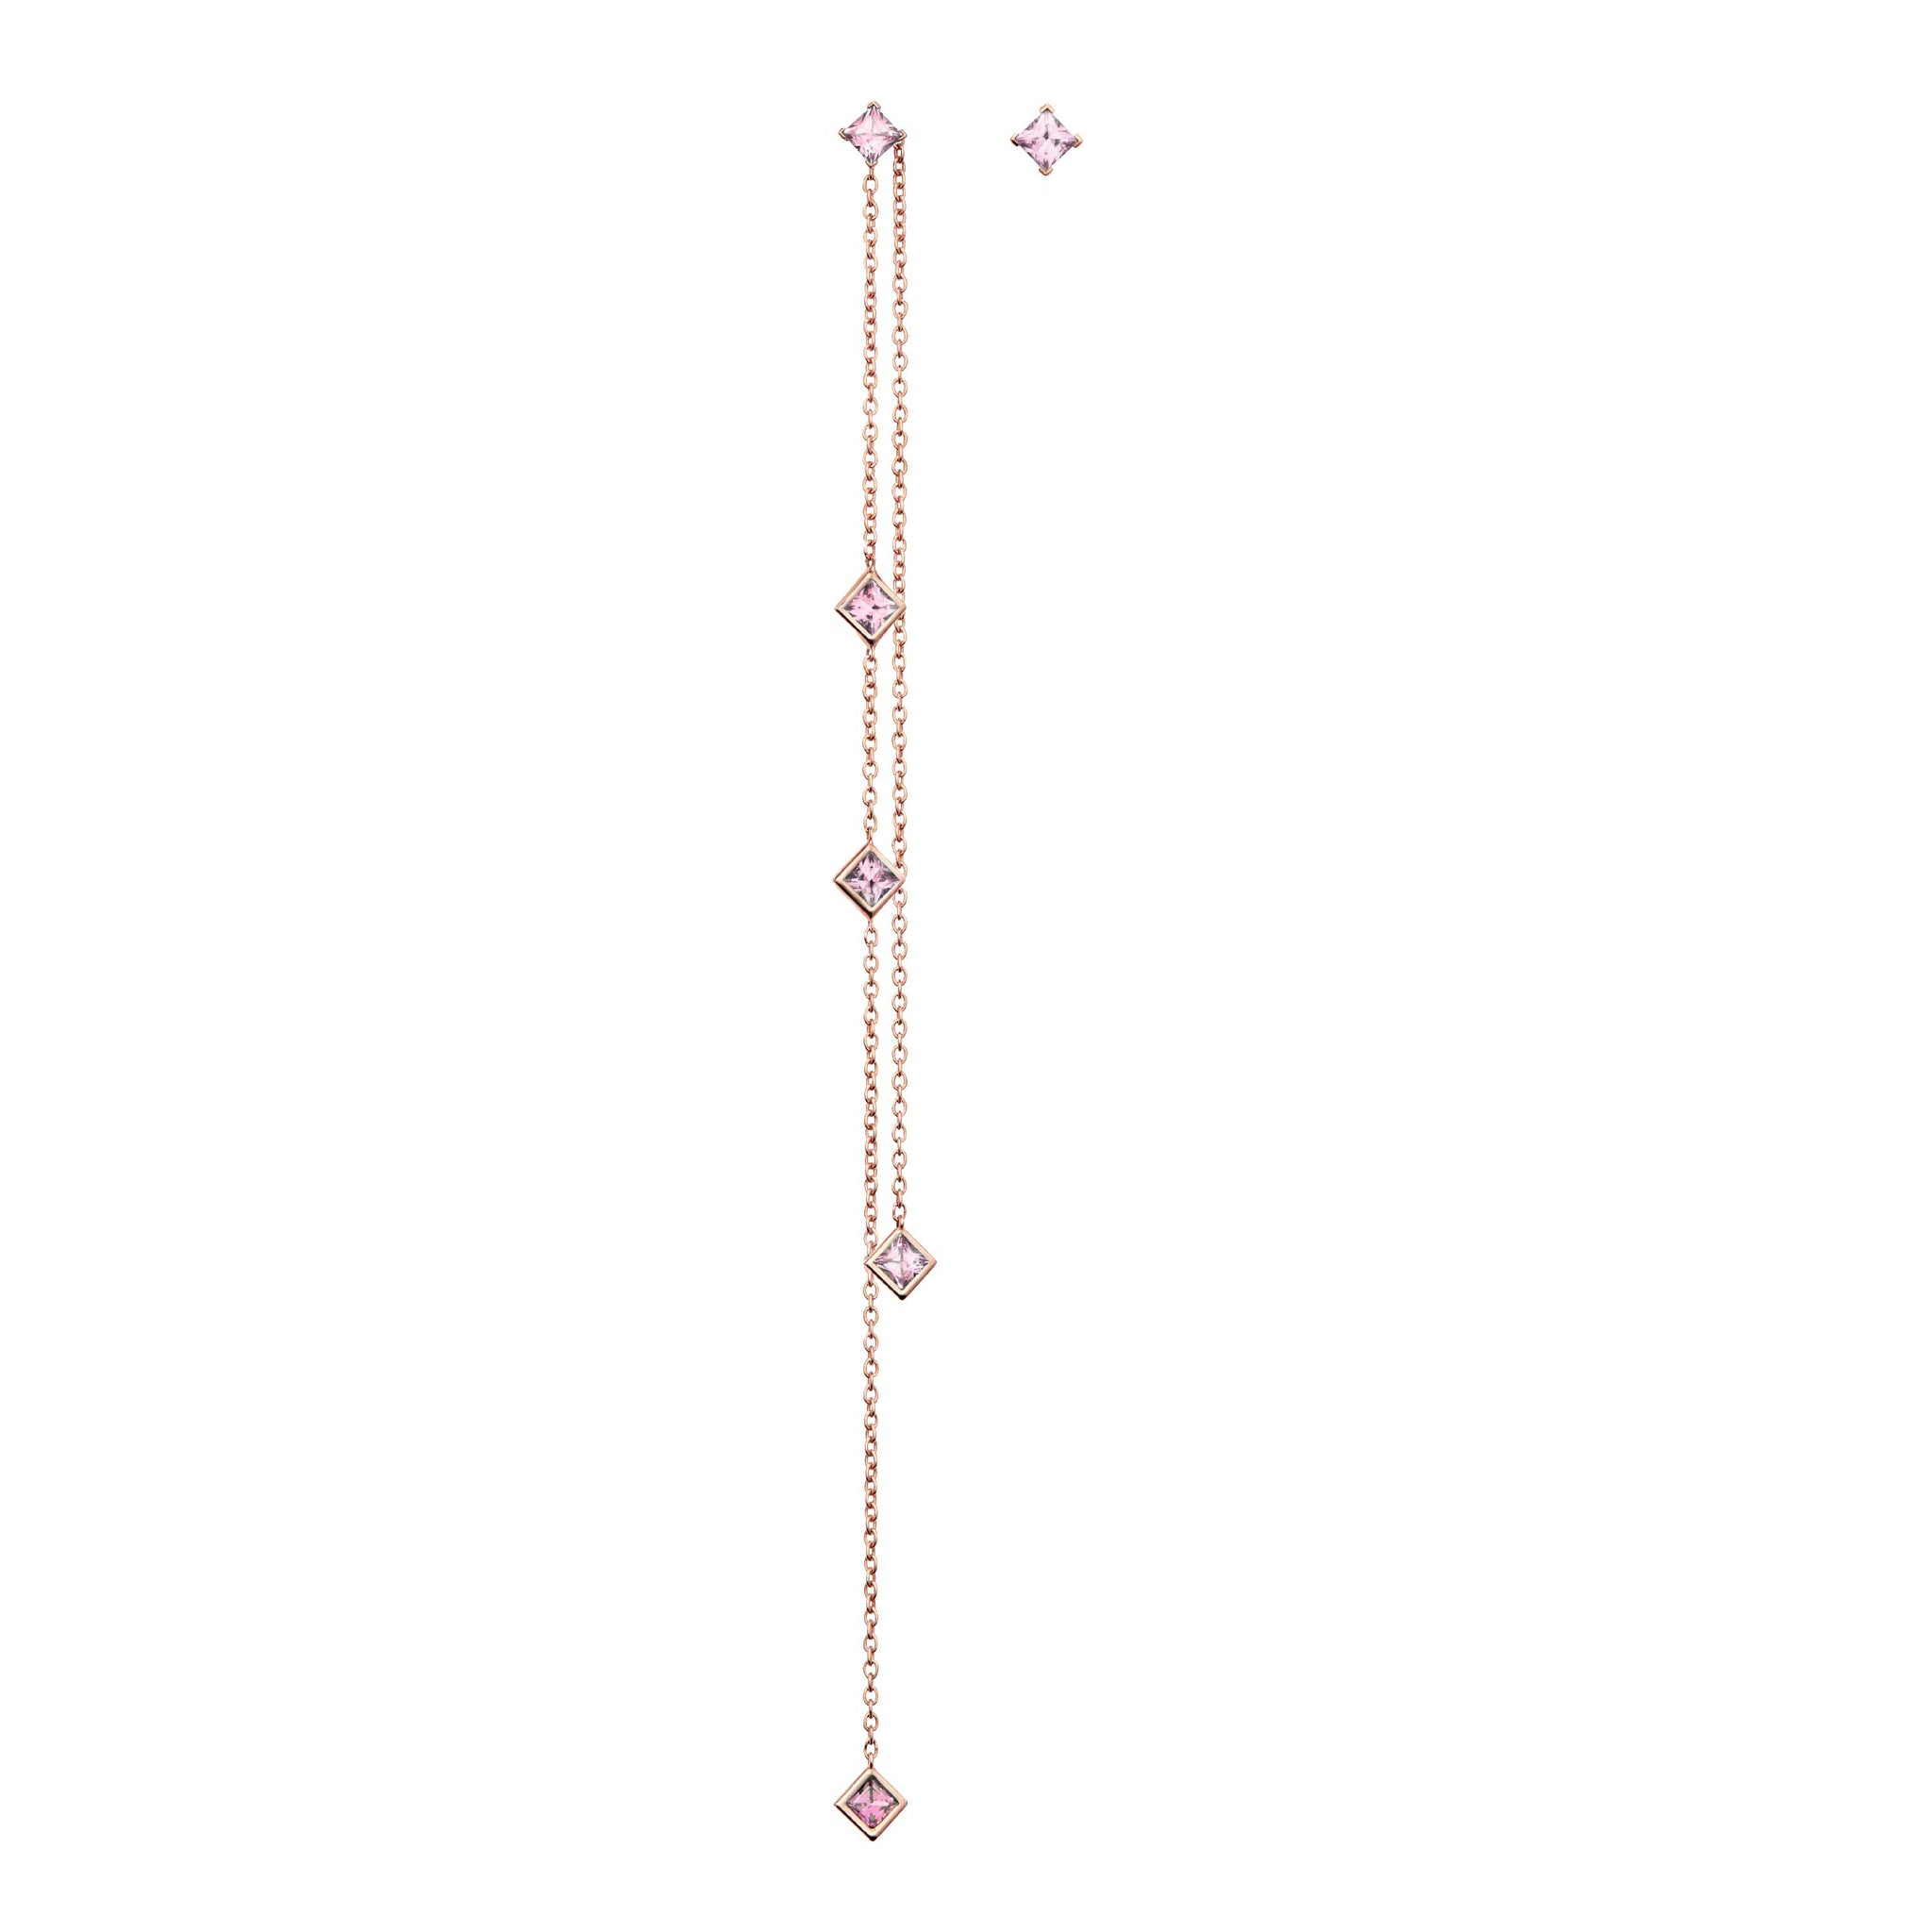 Asymmetric Square Pink Sapphire Chain Earrings